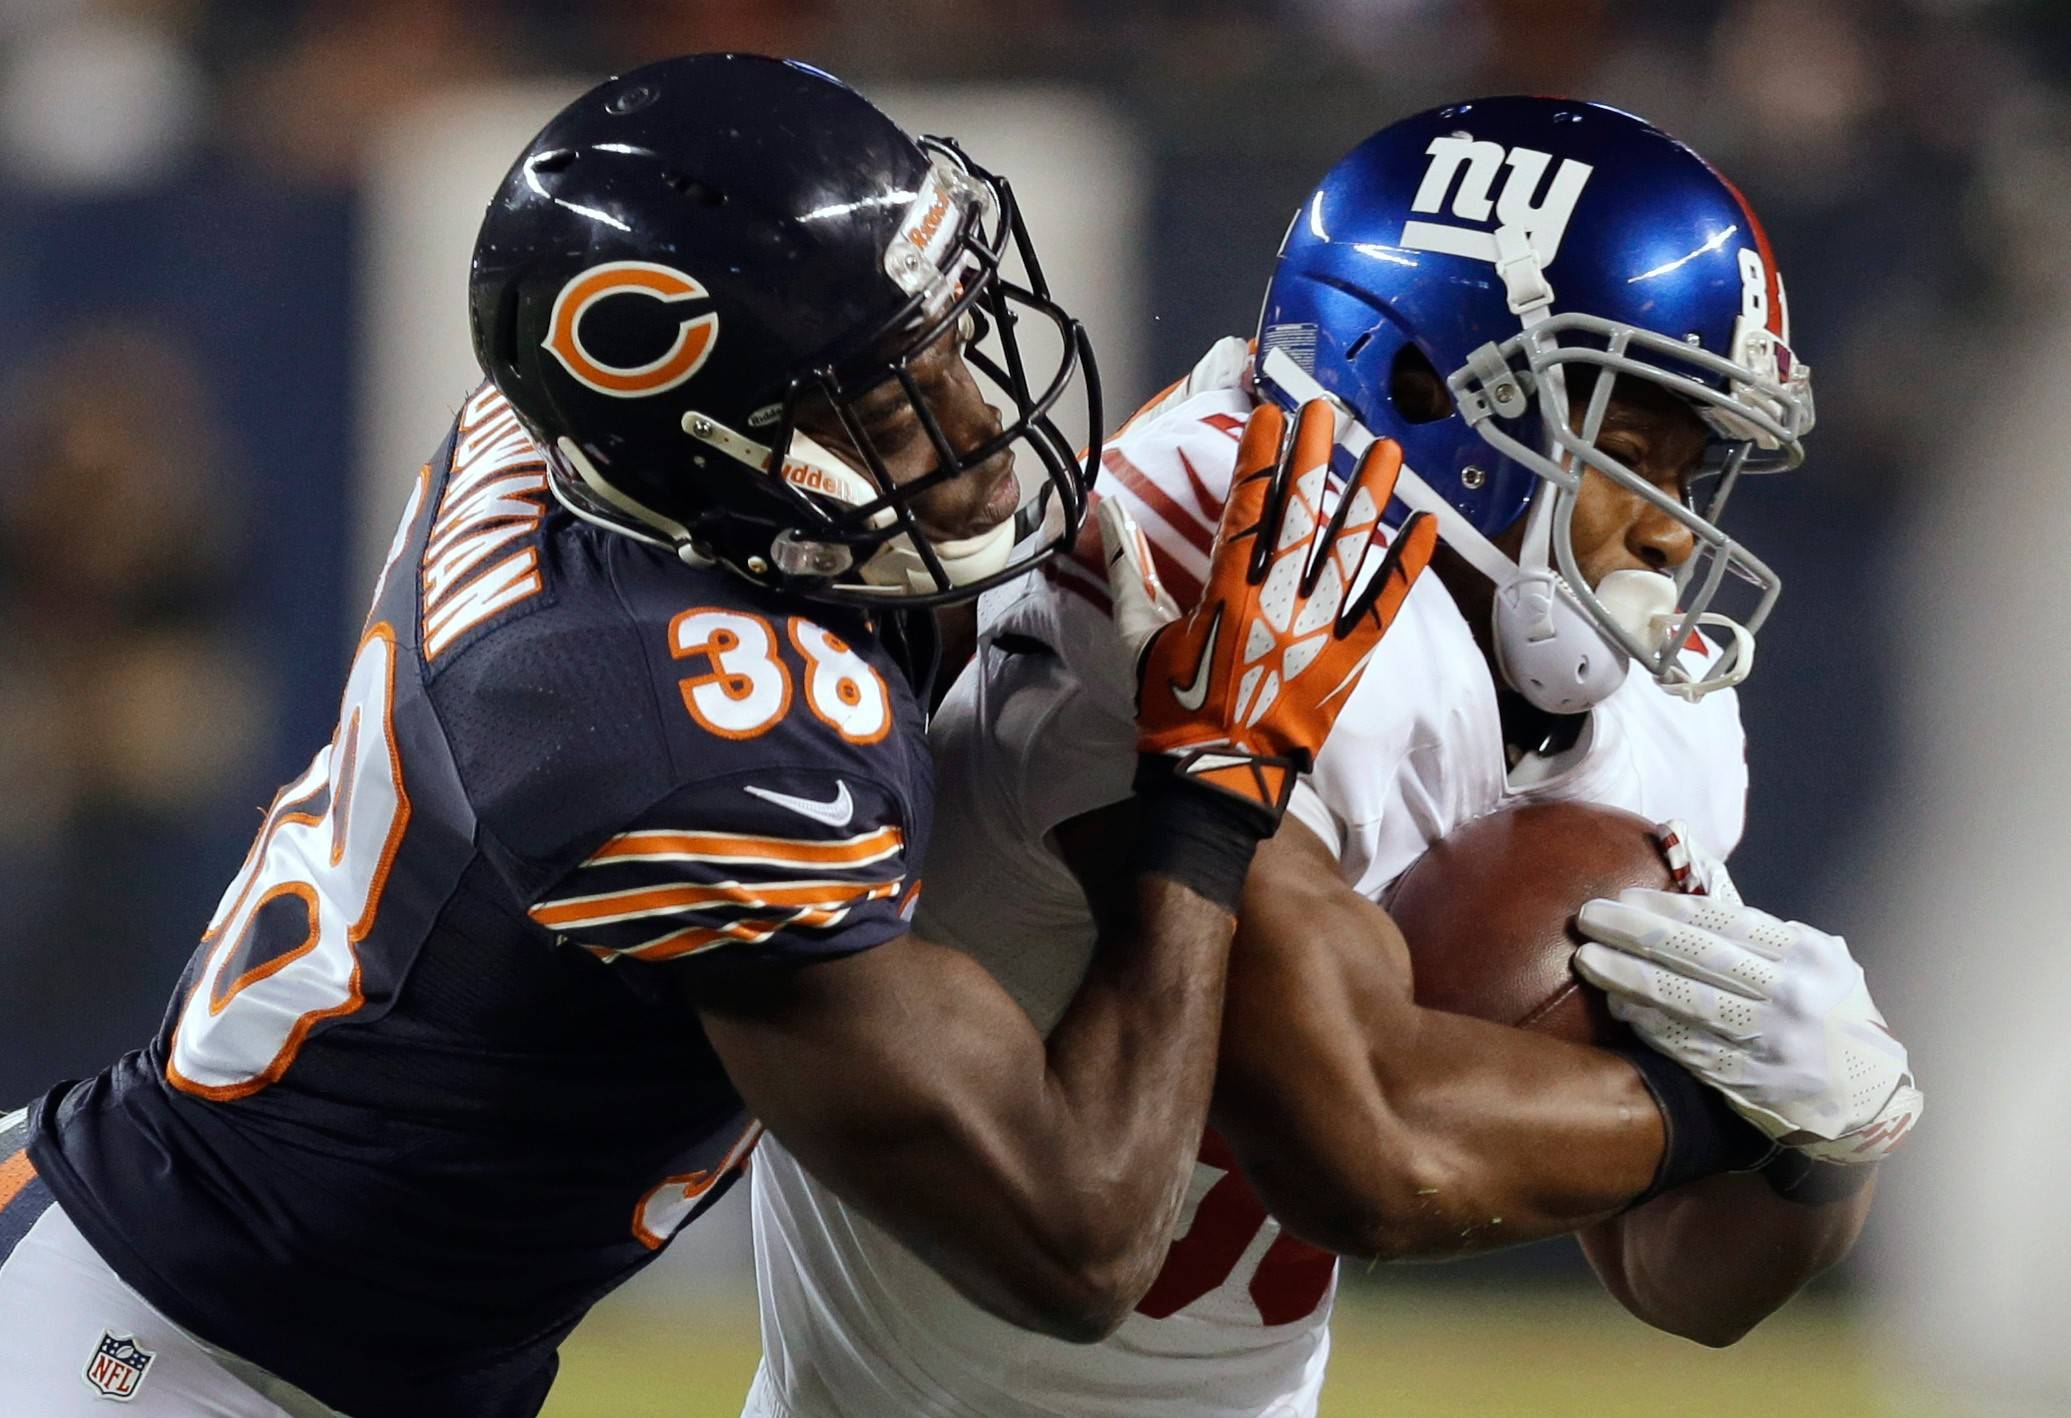 Former New York Giants wide receiver Victor Cruz, right, has agreed to a one-year deal with the Chicago Bears, team officials announced Thursday.